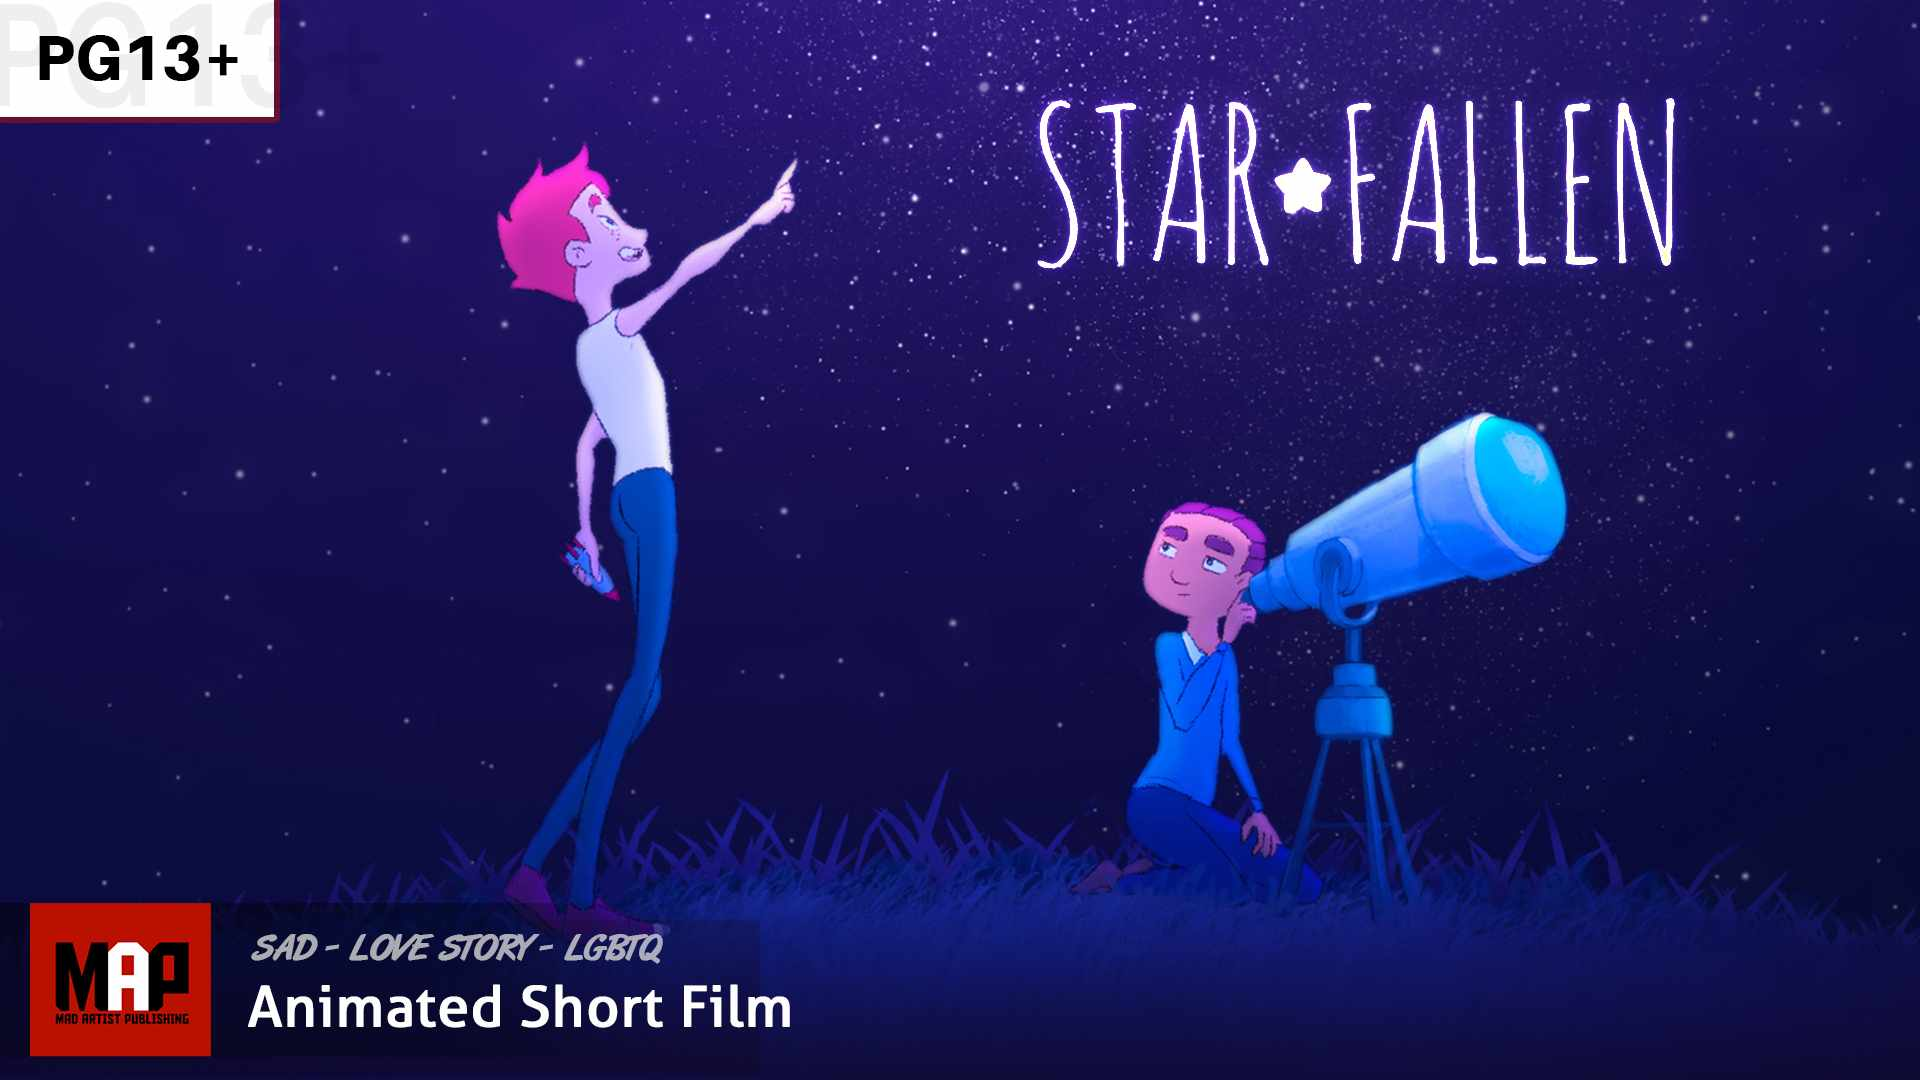 Award Winning LGBTQ Animated Film ** STAR FALLEN ** Love Story by Alex Tagali [PG13]